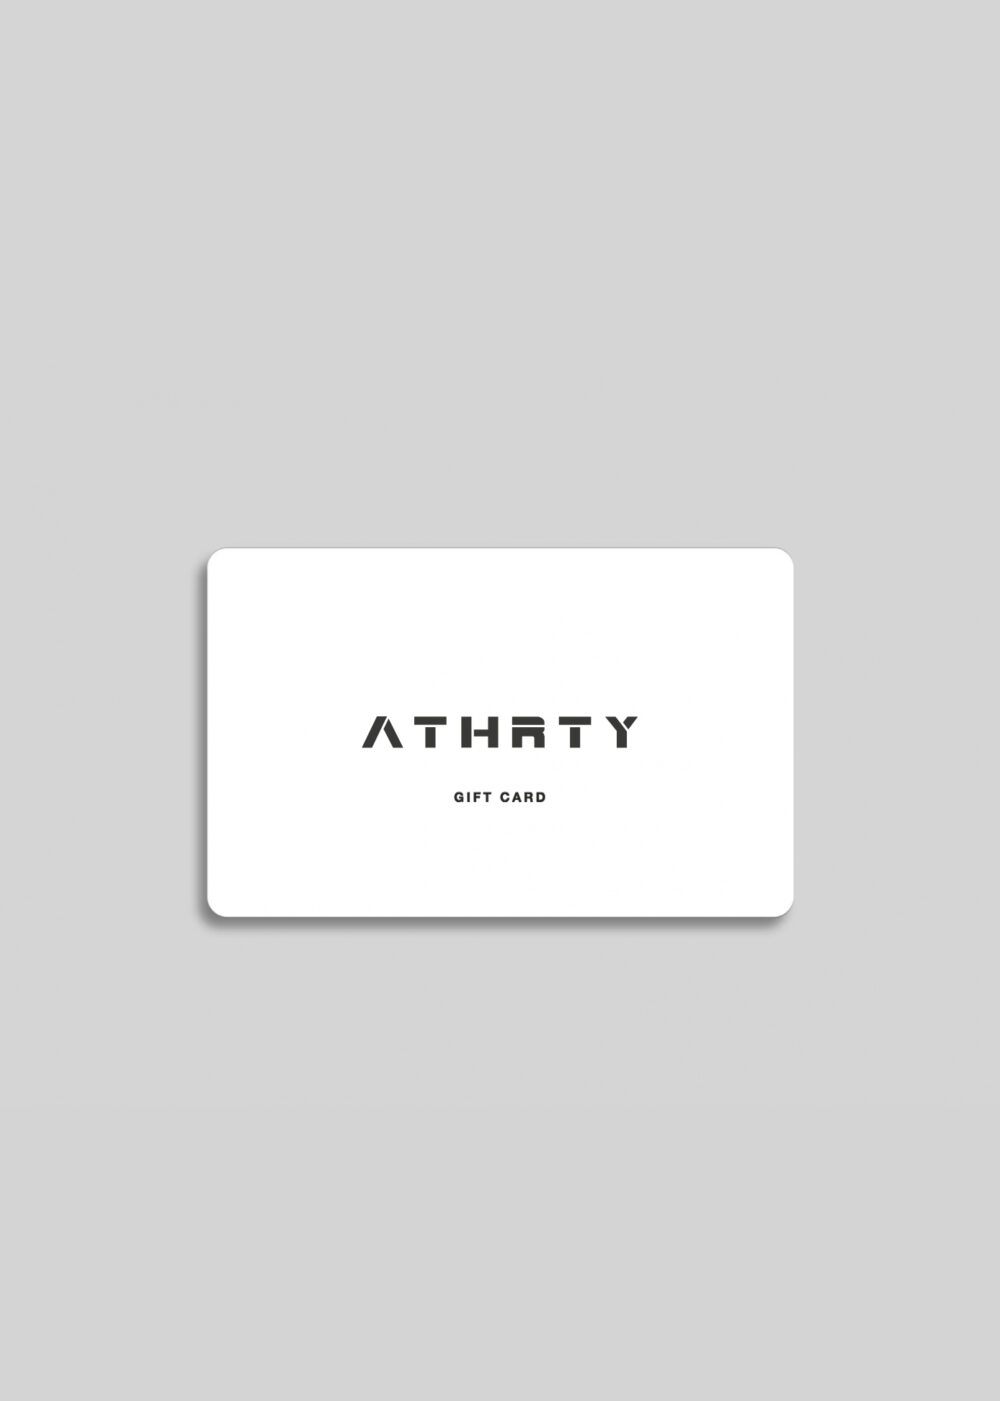 gift_card_ATHRTY